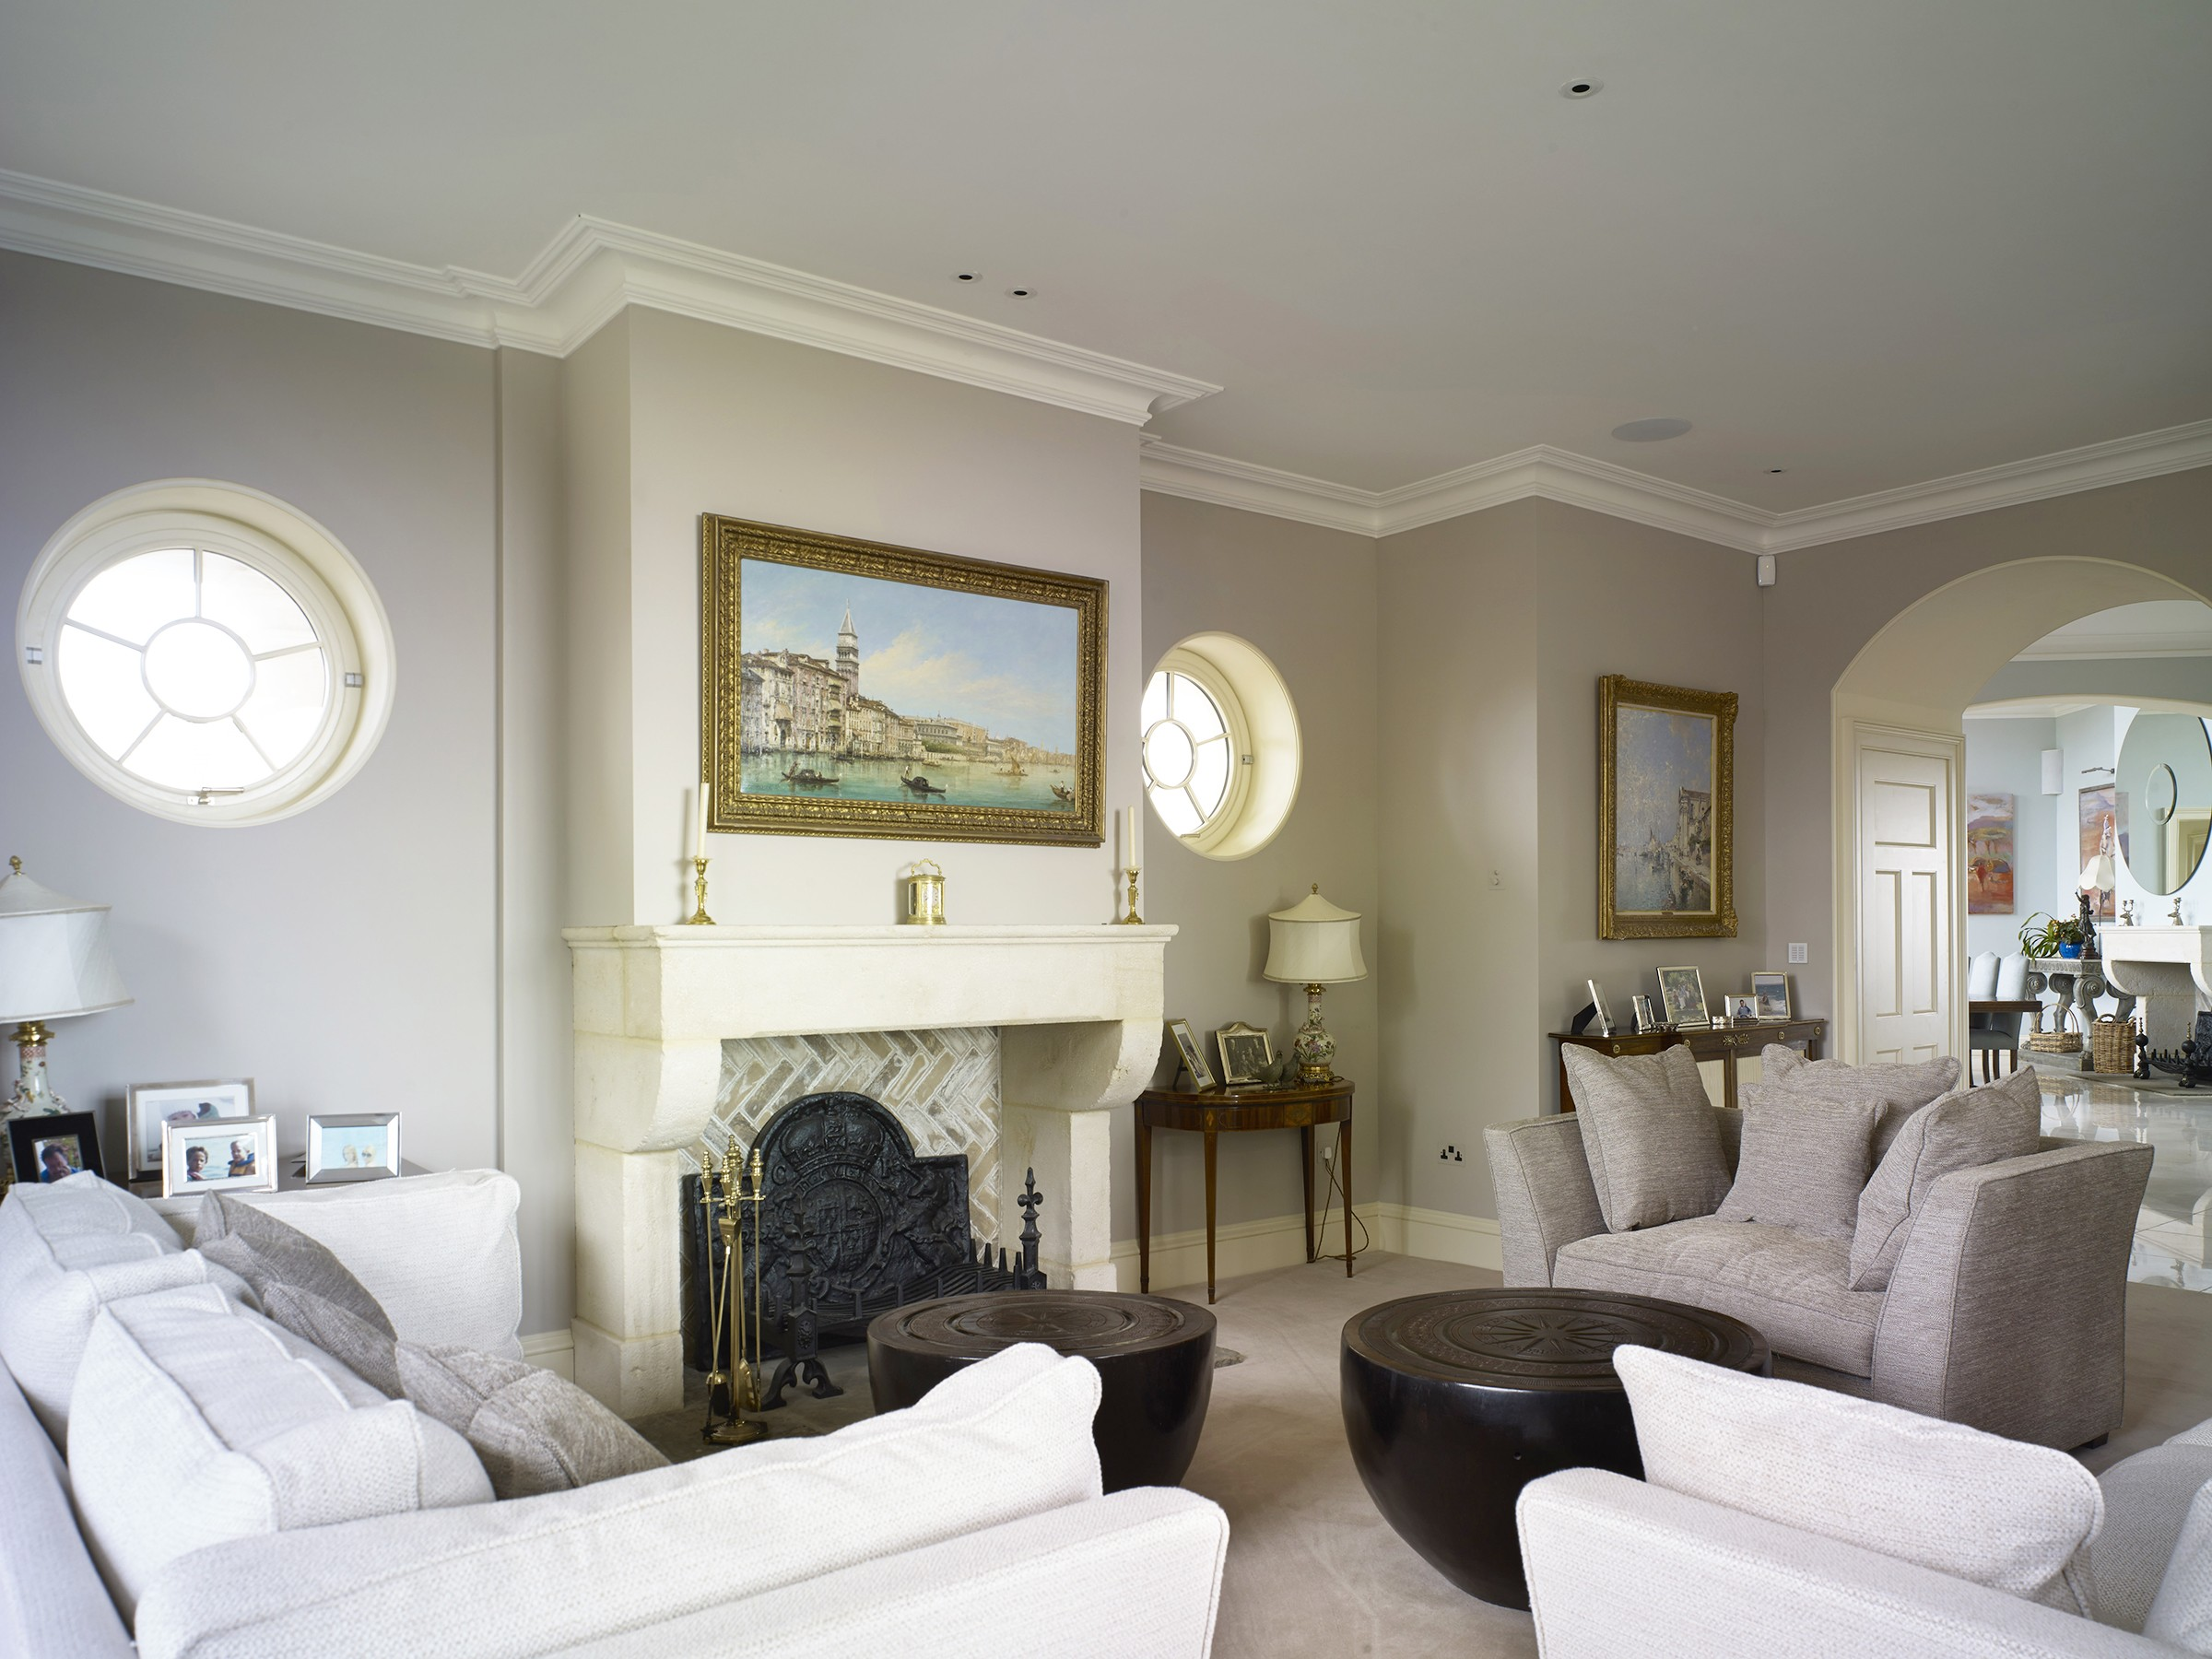 Replacement Regency house interior, Hampshire